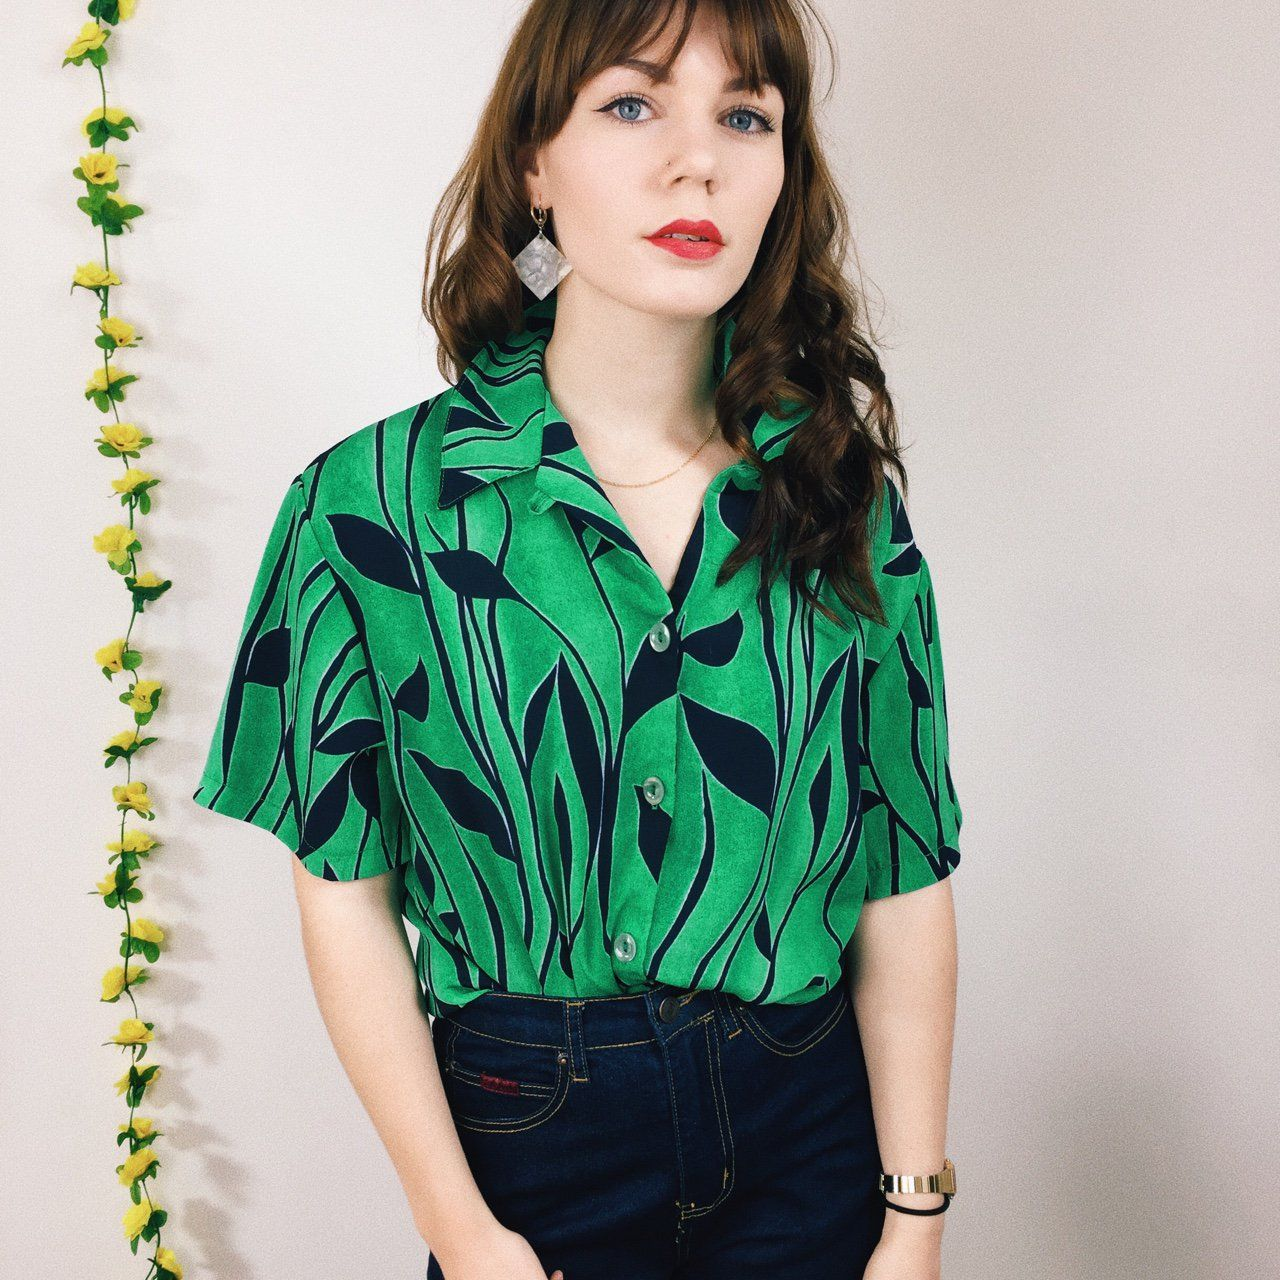 a78774b73ac8 16 quid depop🌿 bright retro green and black vintage shirt 🌿 flower leaves  pattern